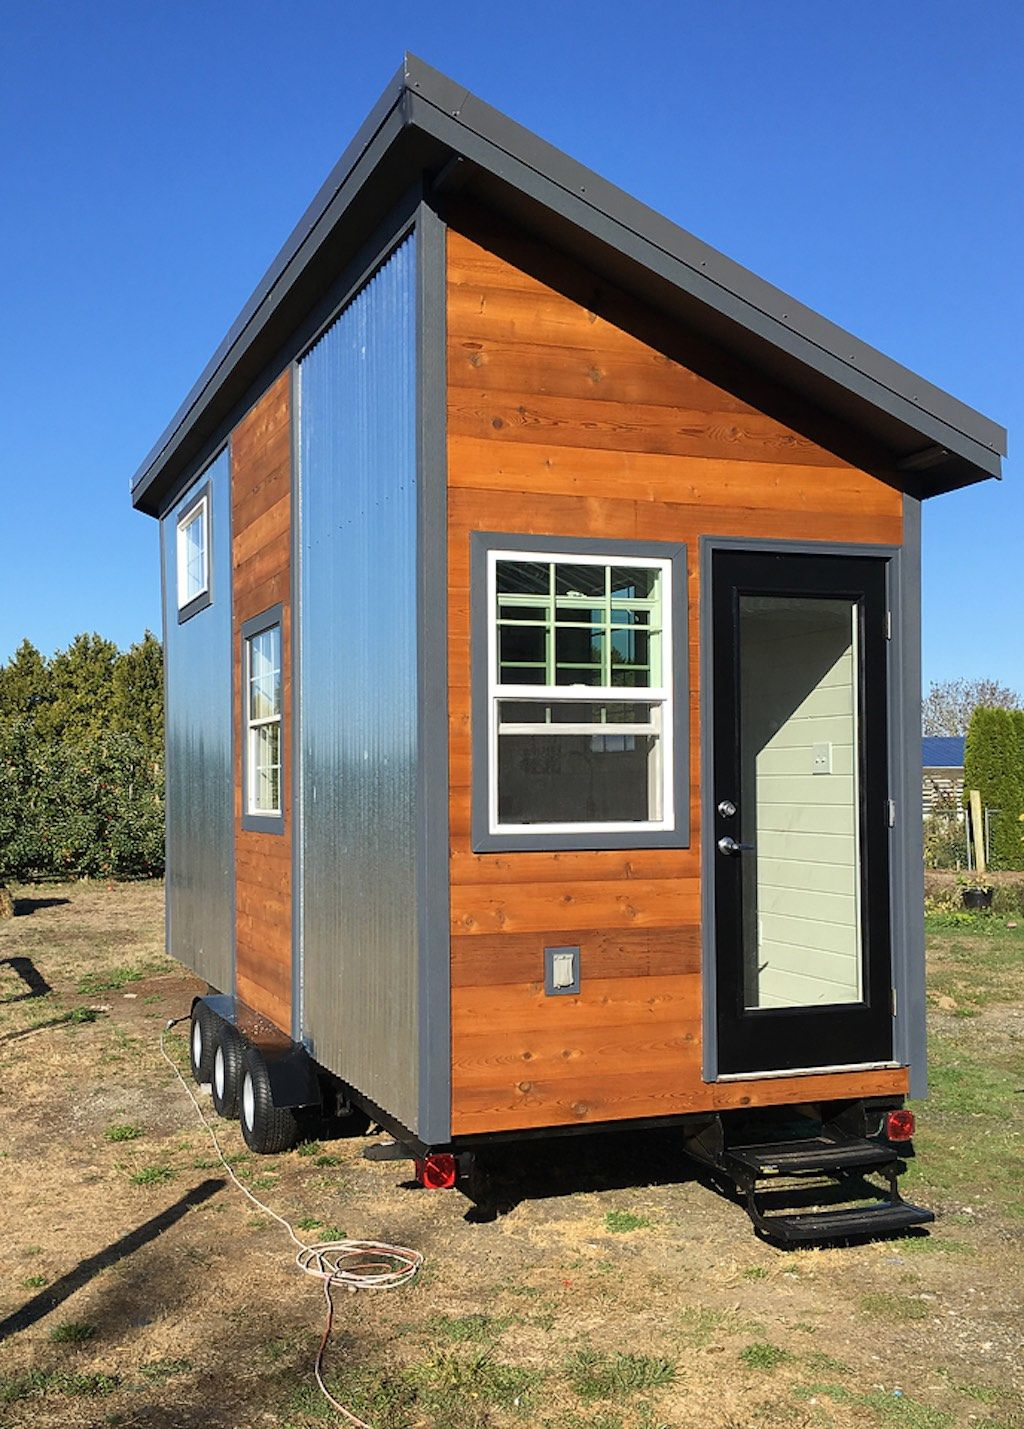 Rustic Industrial Tiny House Exterior Tiny House On Wheels